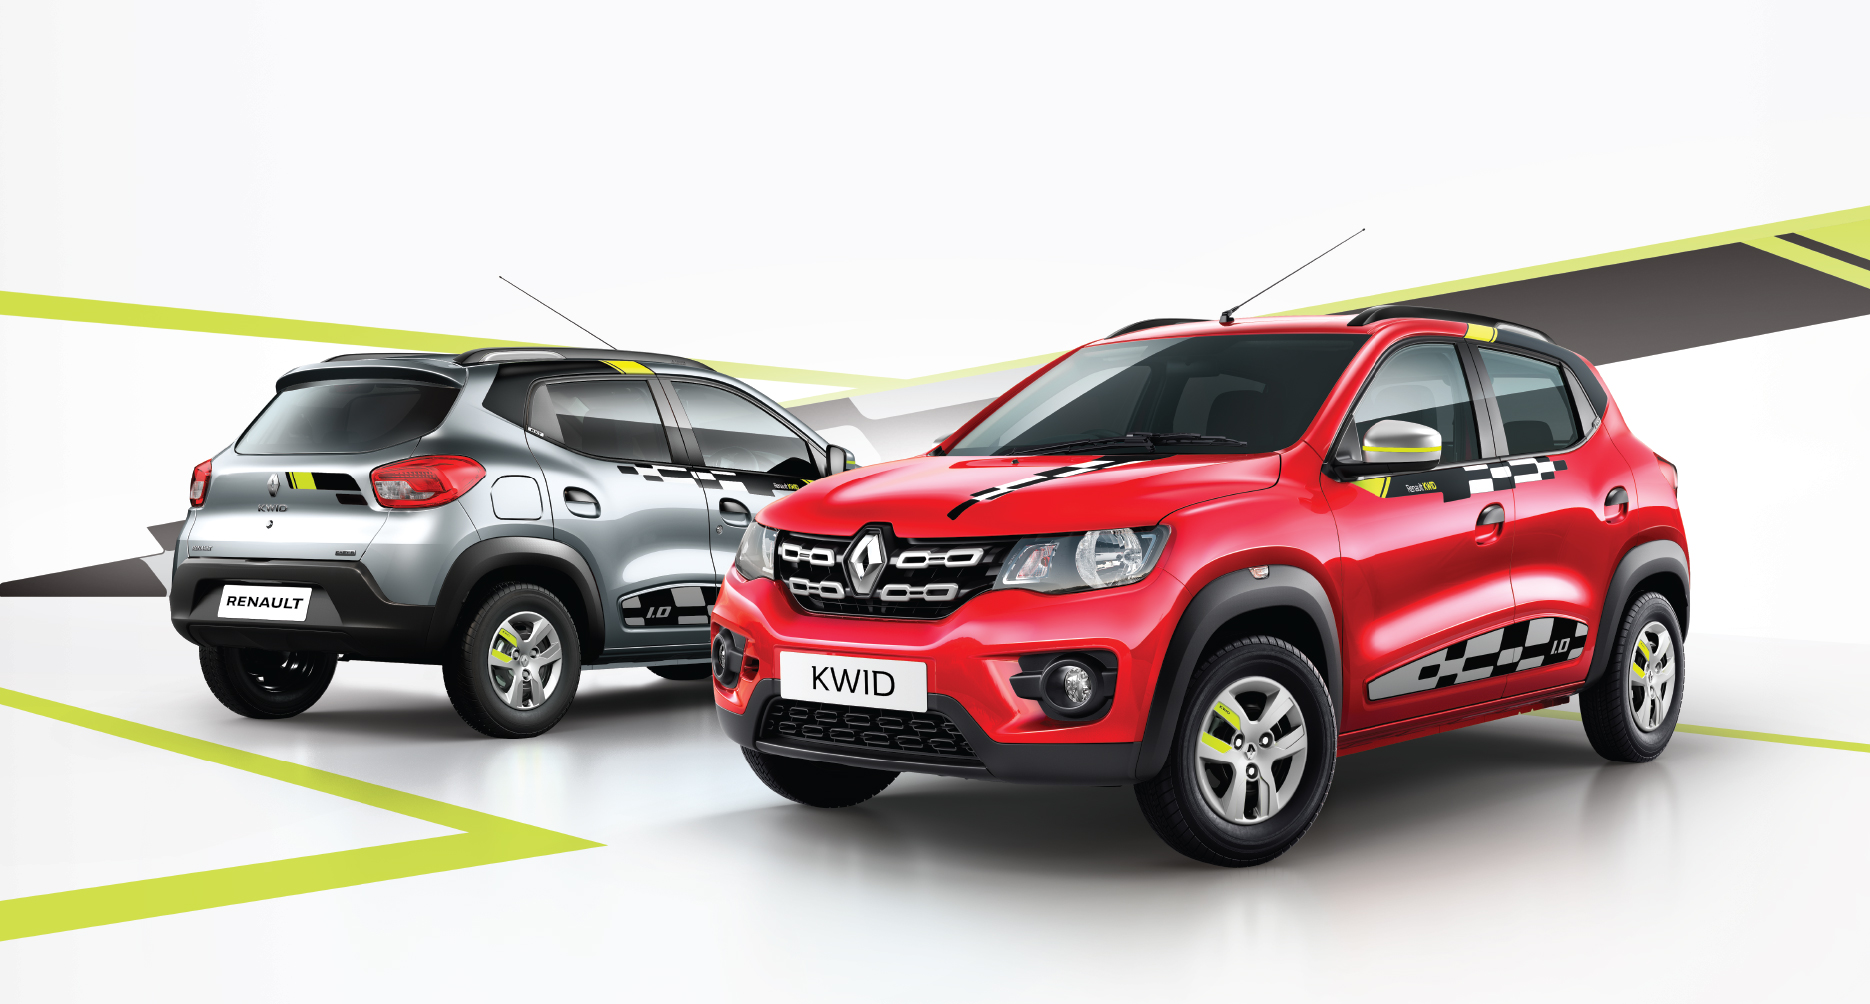 renault kwid live for more reloaded 2018 edition launched in india motoroids. Black Bedroom Furniture Sets. Home Design Ideas